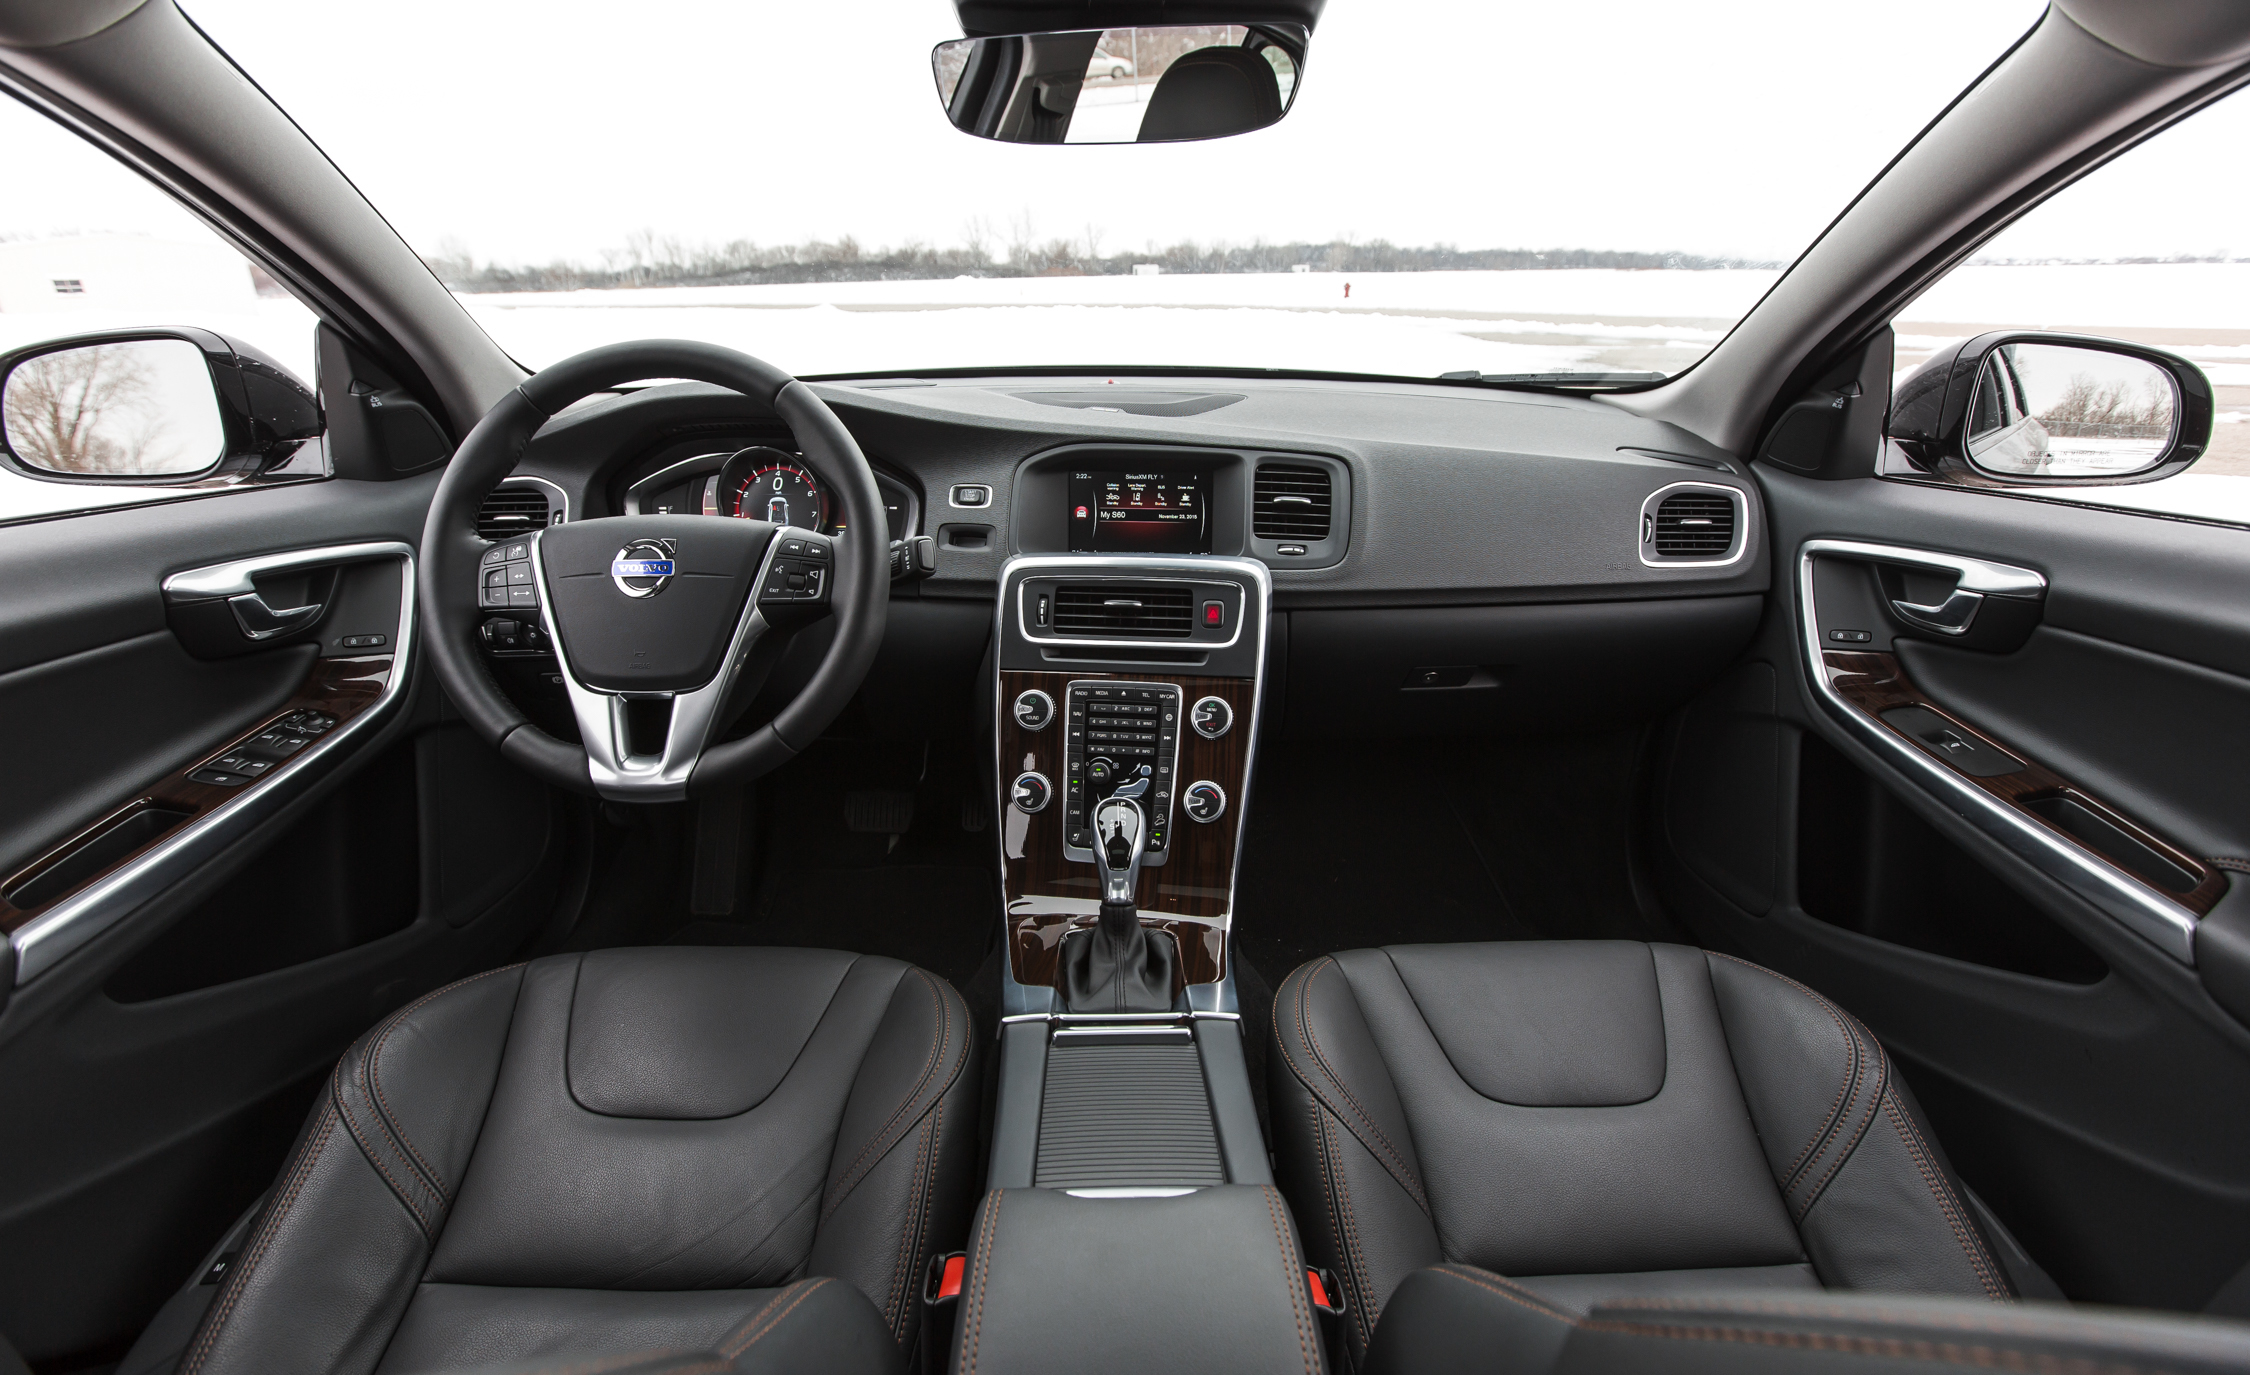 2016 Volvo S60 Cross Country Interior (Photo 11 of 21)